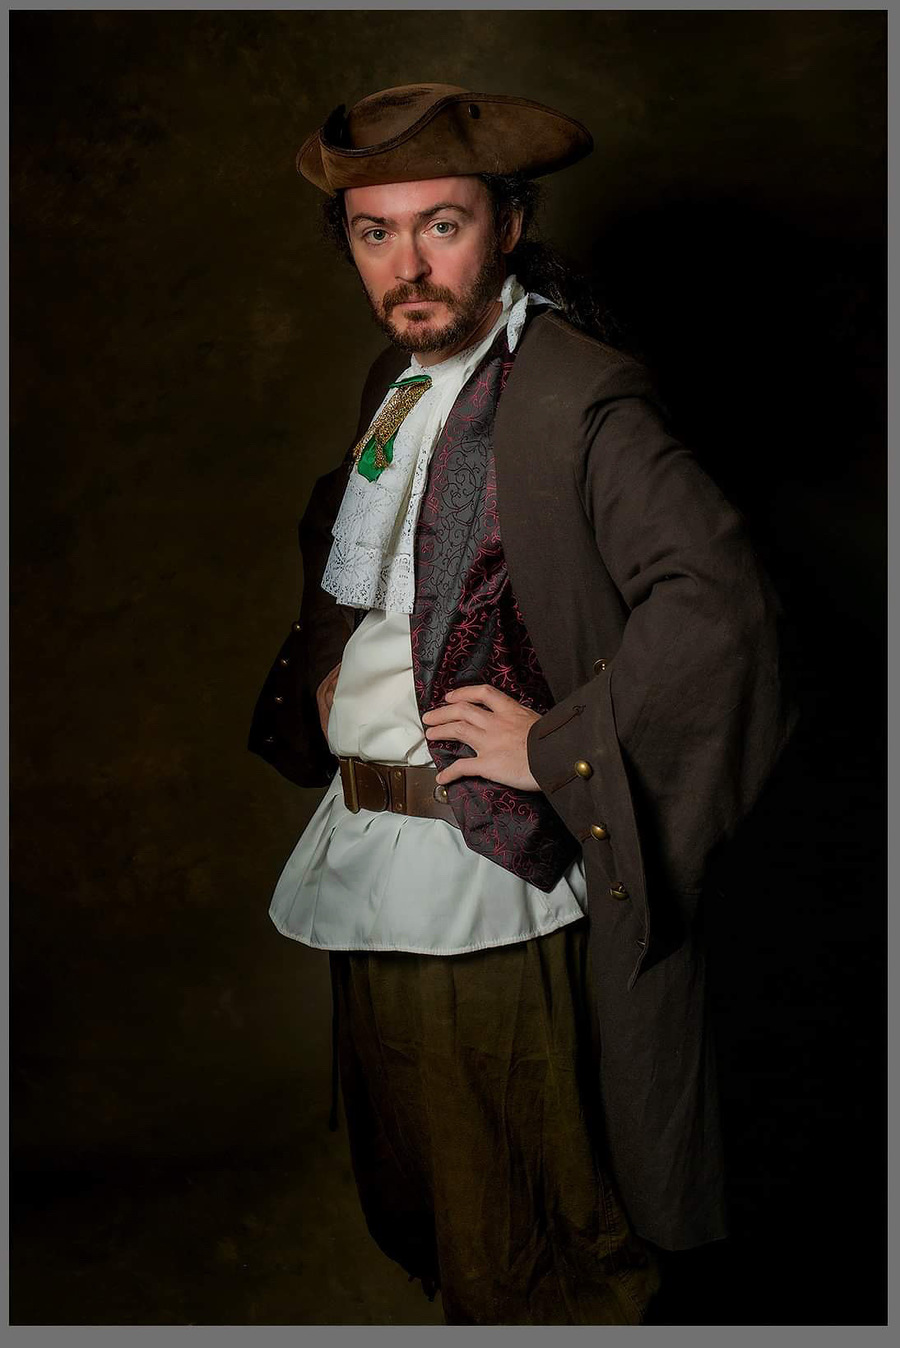 Portrait of a Pirate / Photography by Richard Adams Captured Moments, Model The Bard, Post processing by Richard Adams Captured Moments / Uploaded 22nd September 2019 @ 09:17 AM